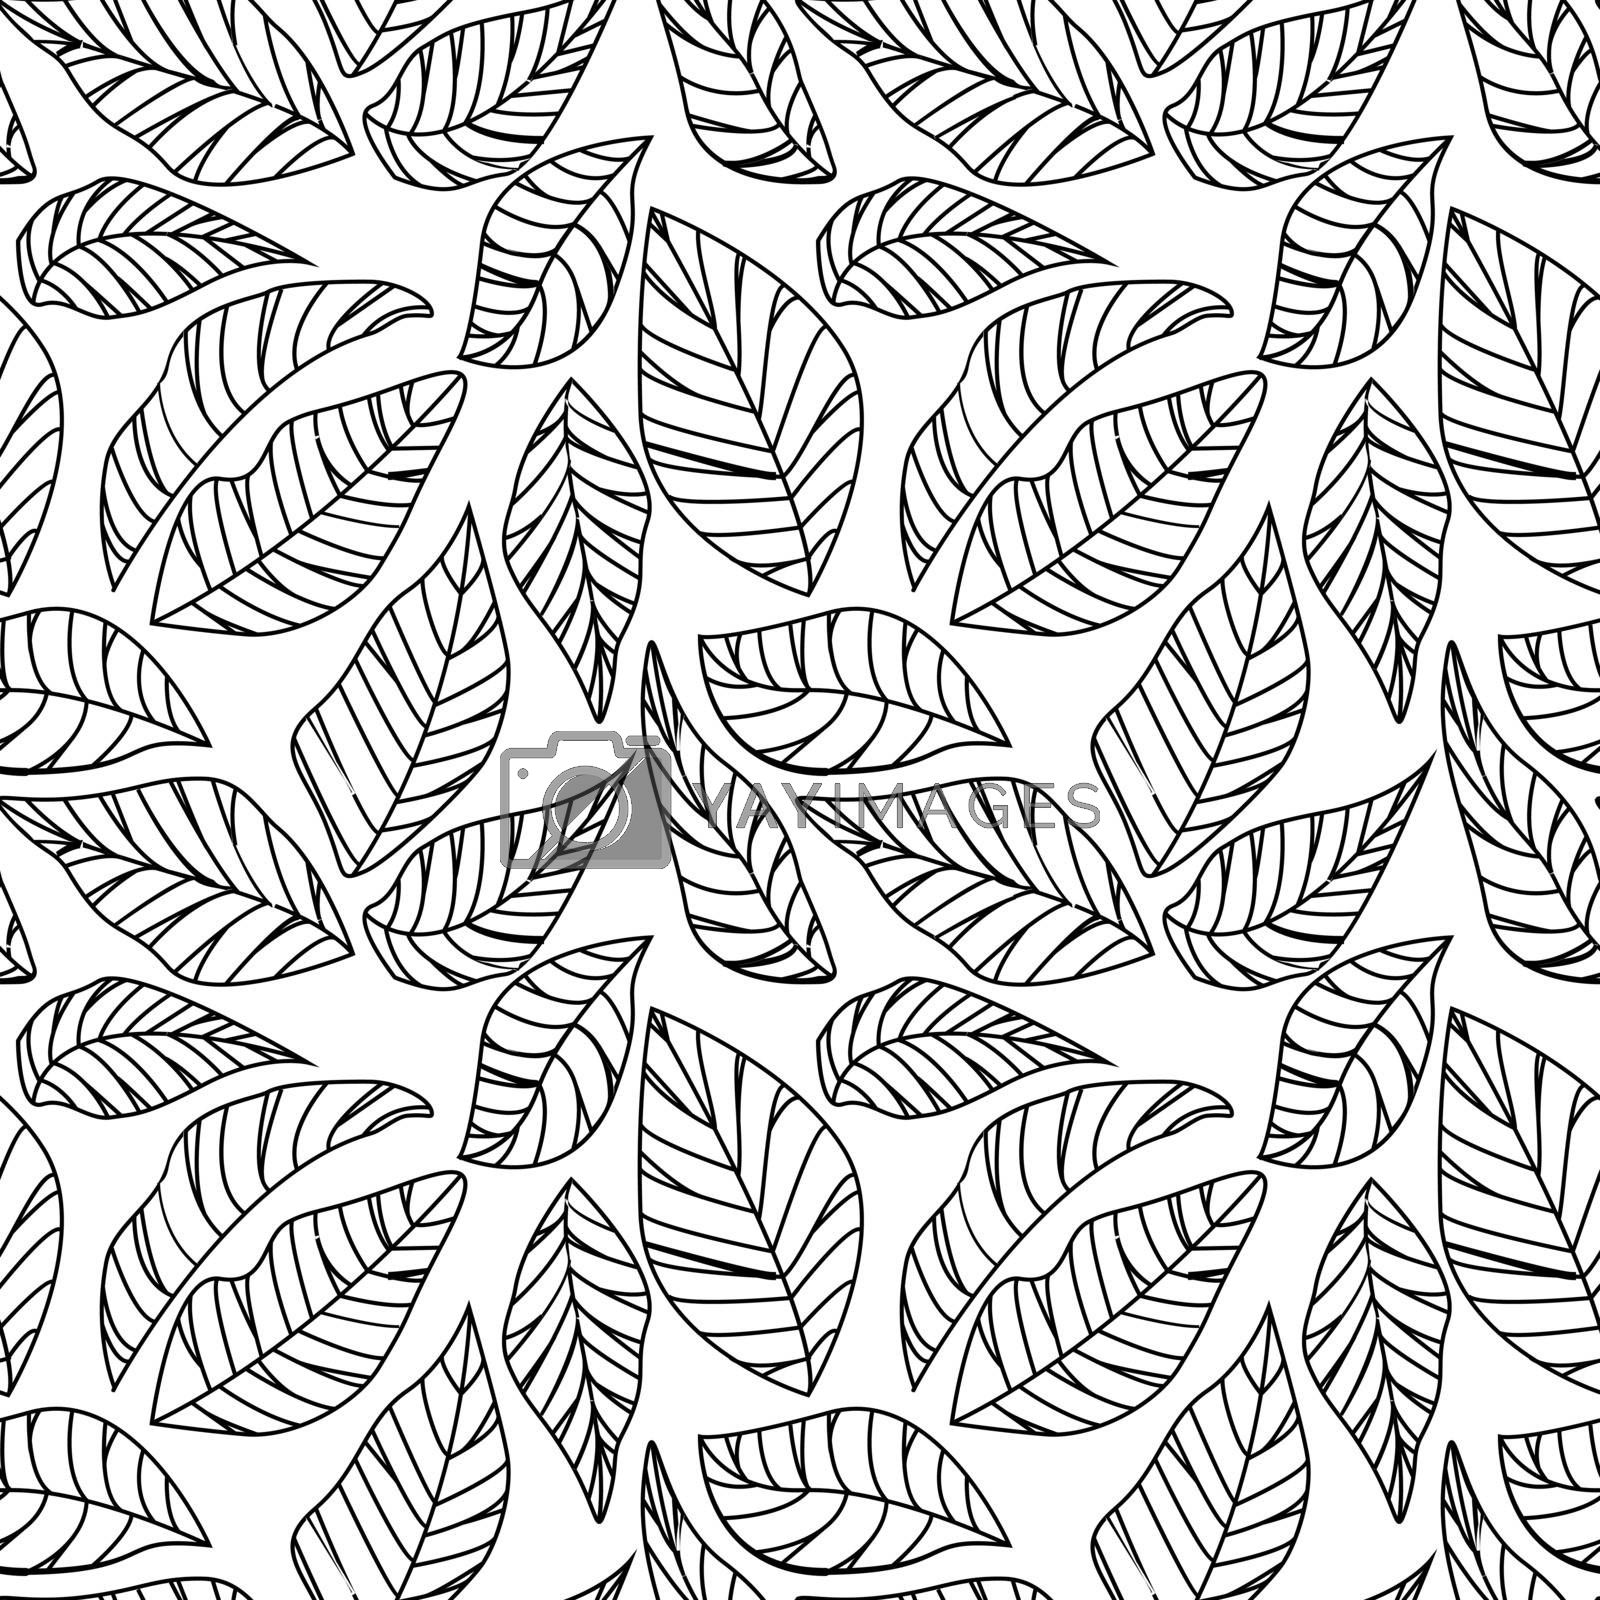 Vector illustration of leaves seamless pattern. Natural background with green leaves